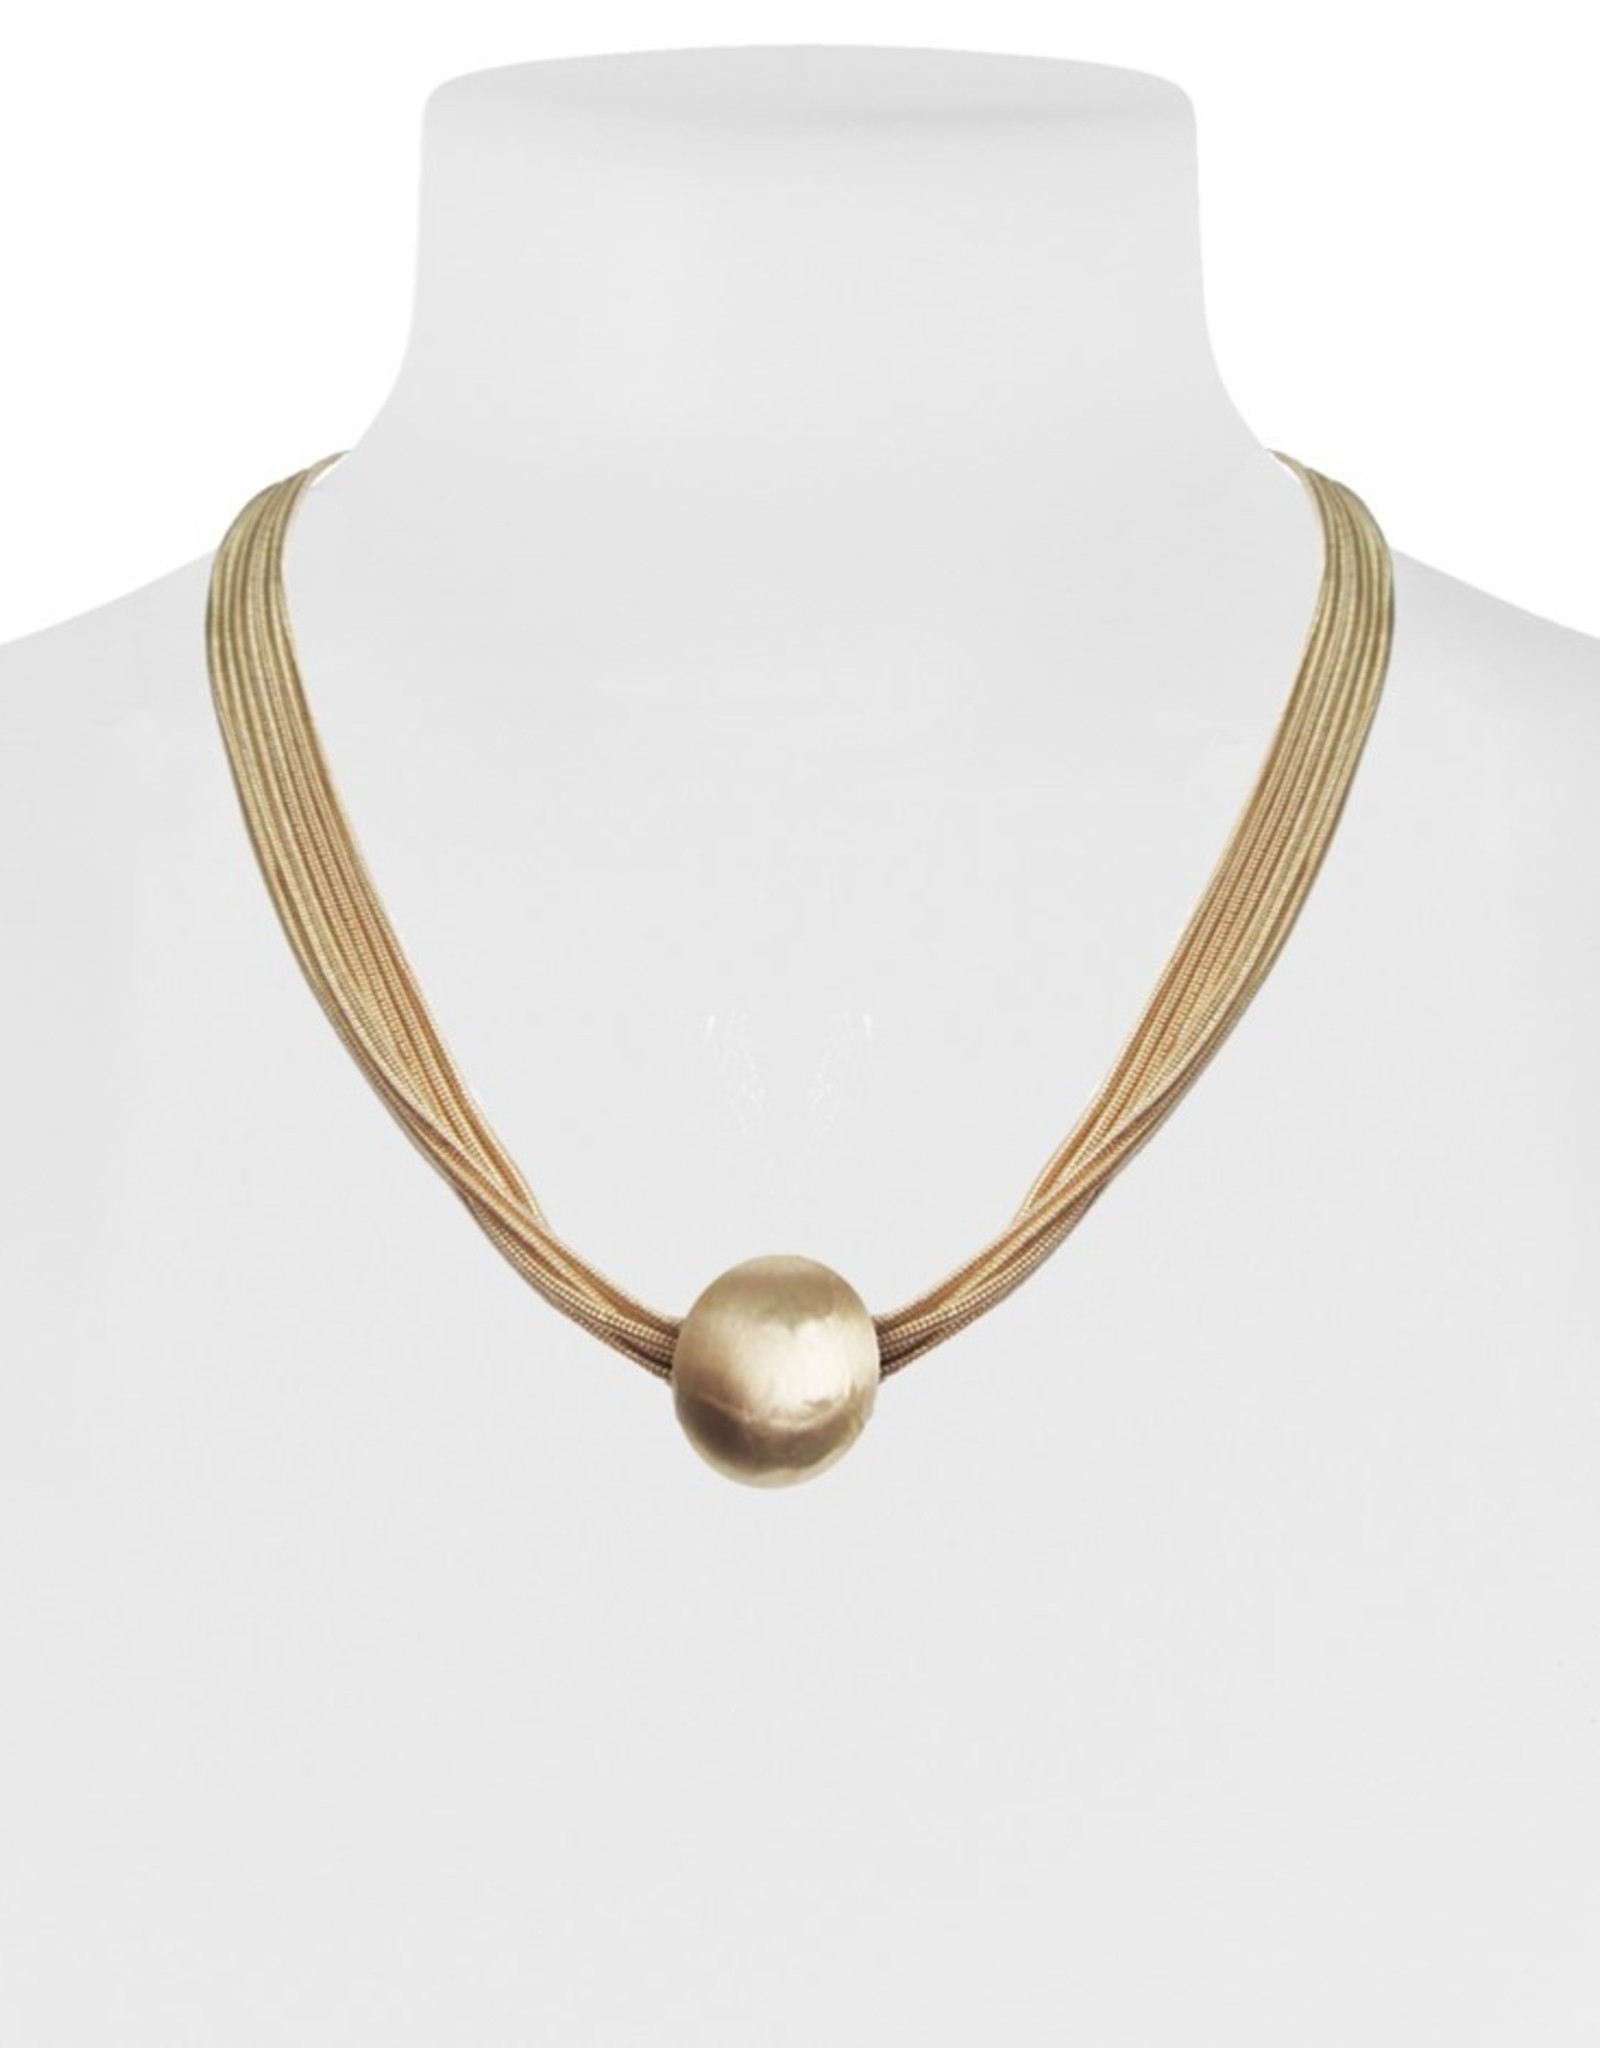 Chain Necklace with a Brushed Metal Pendant-gold